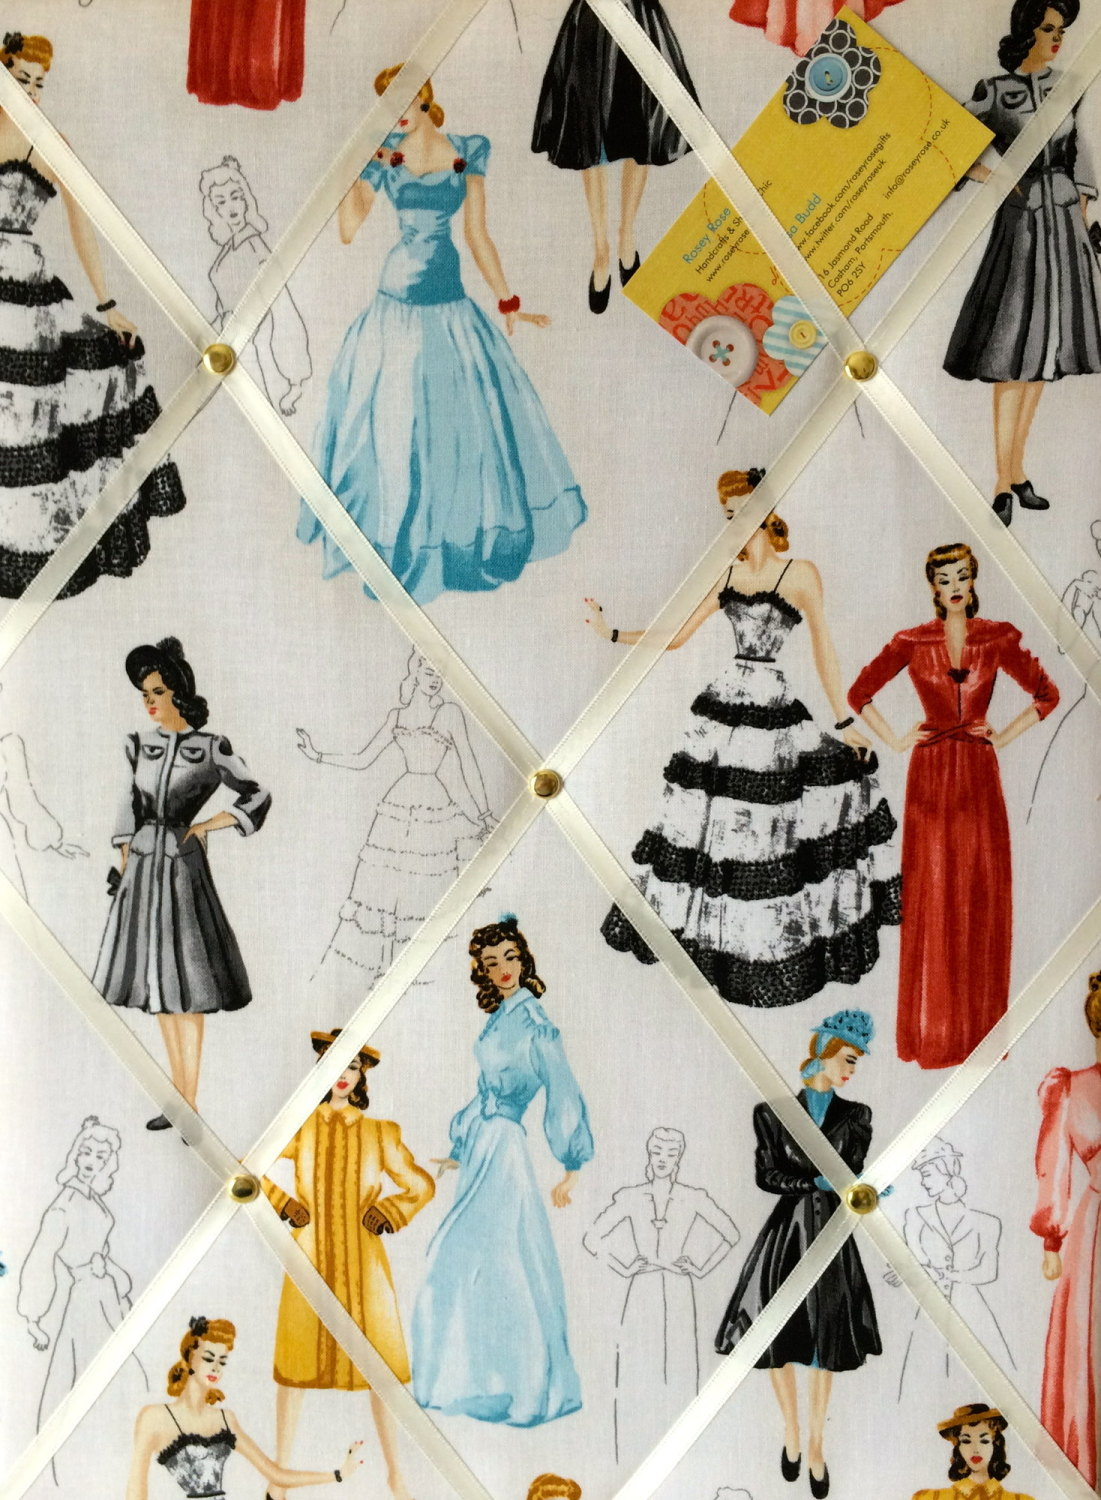 Medium 40x30cm Robert Kaufman 1950s Glamour Girls Hand Crafted Fabric Notic